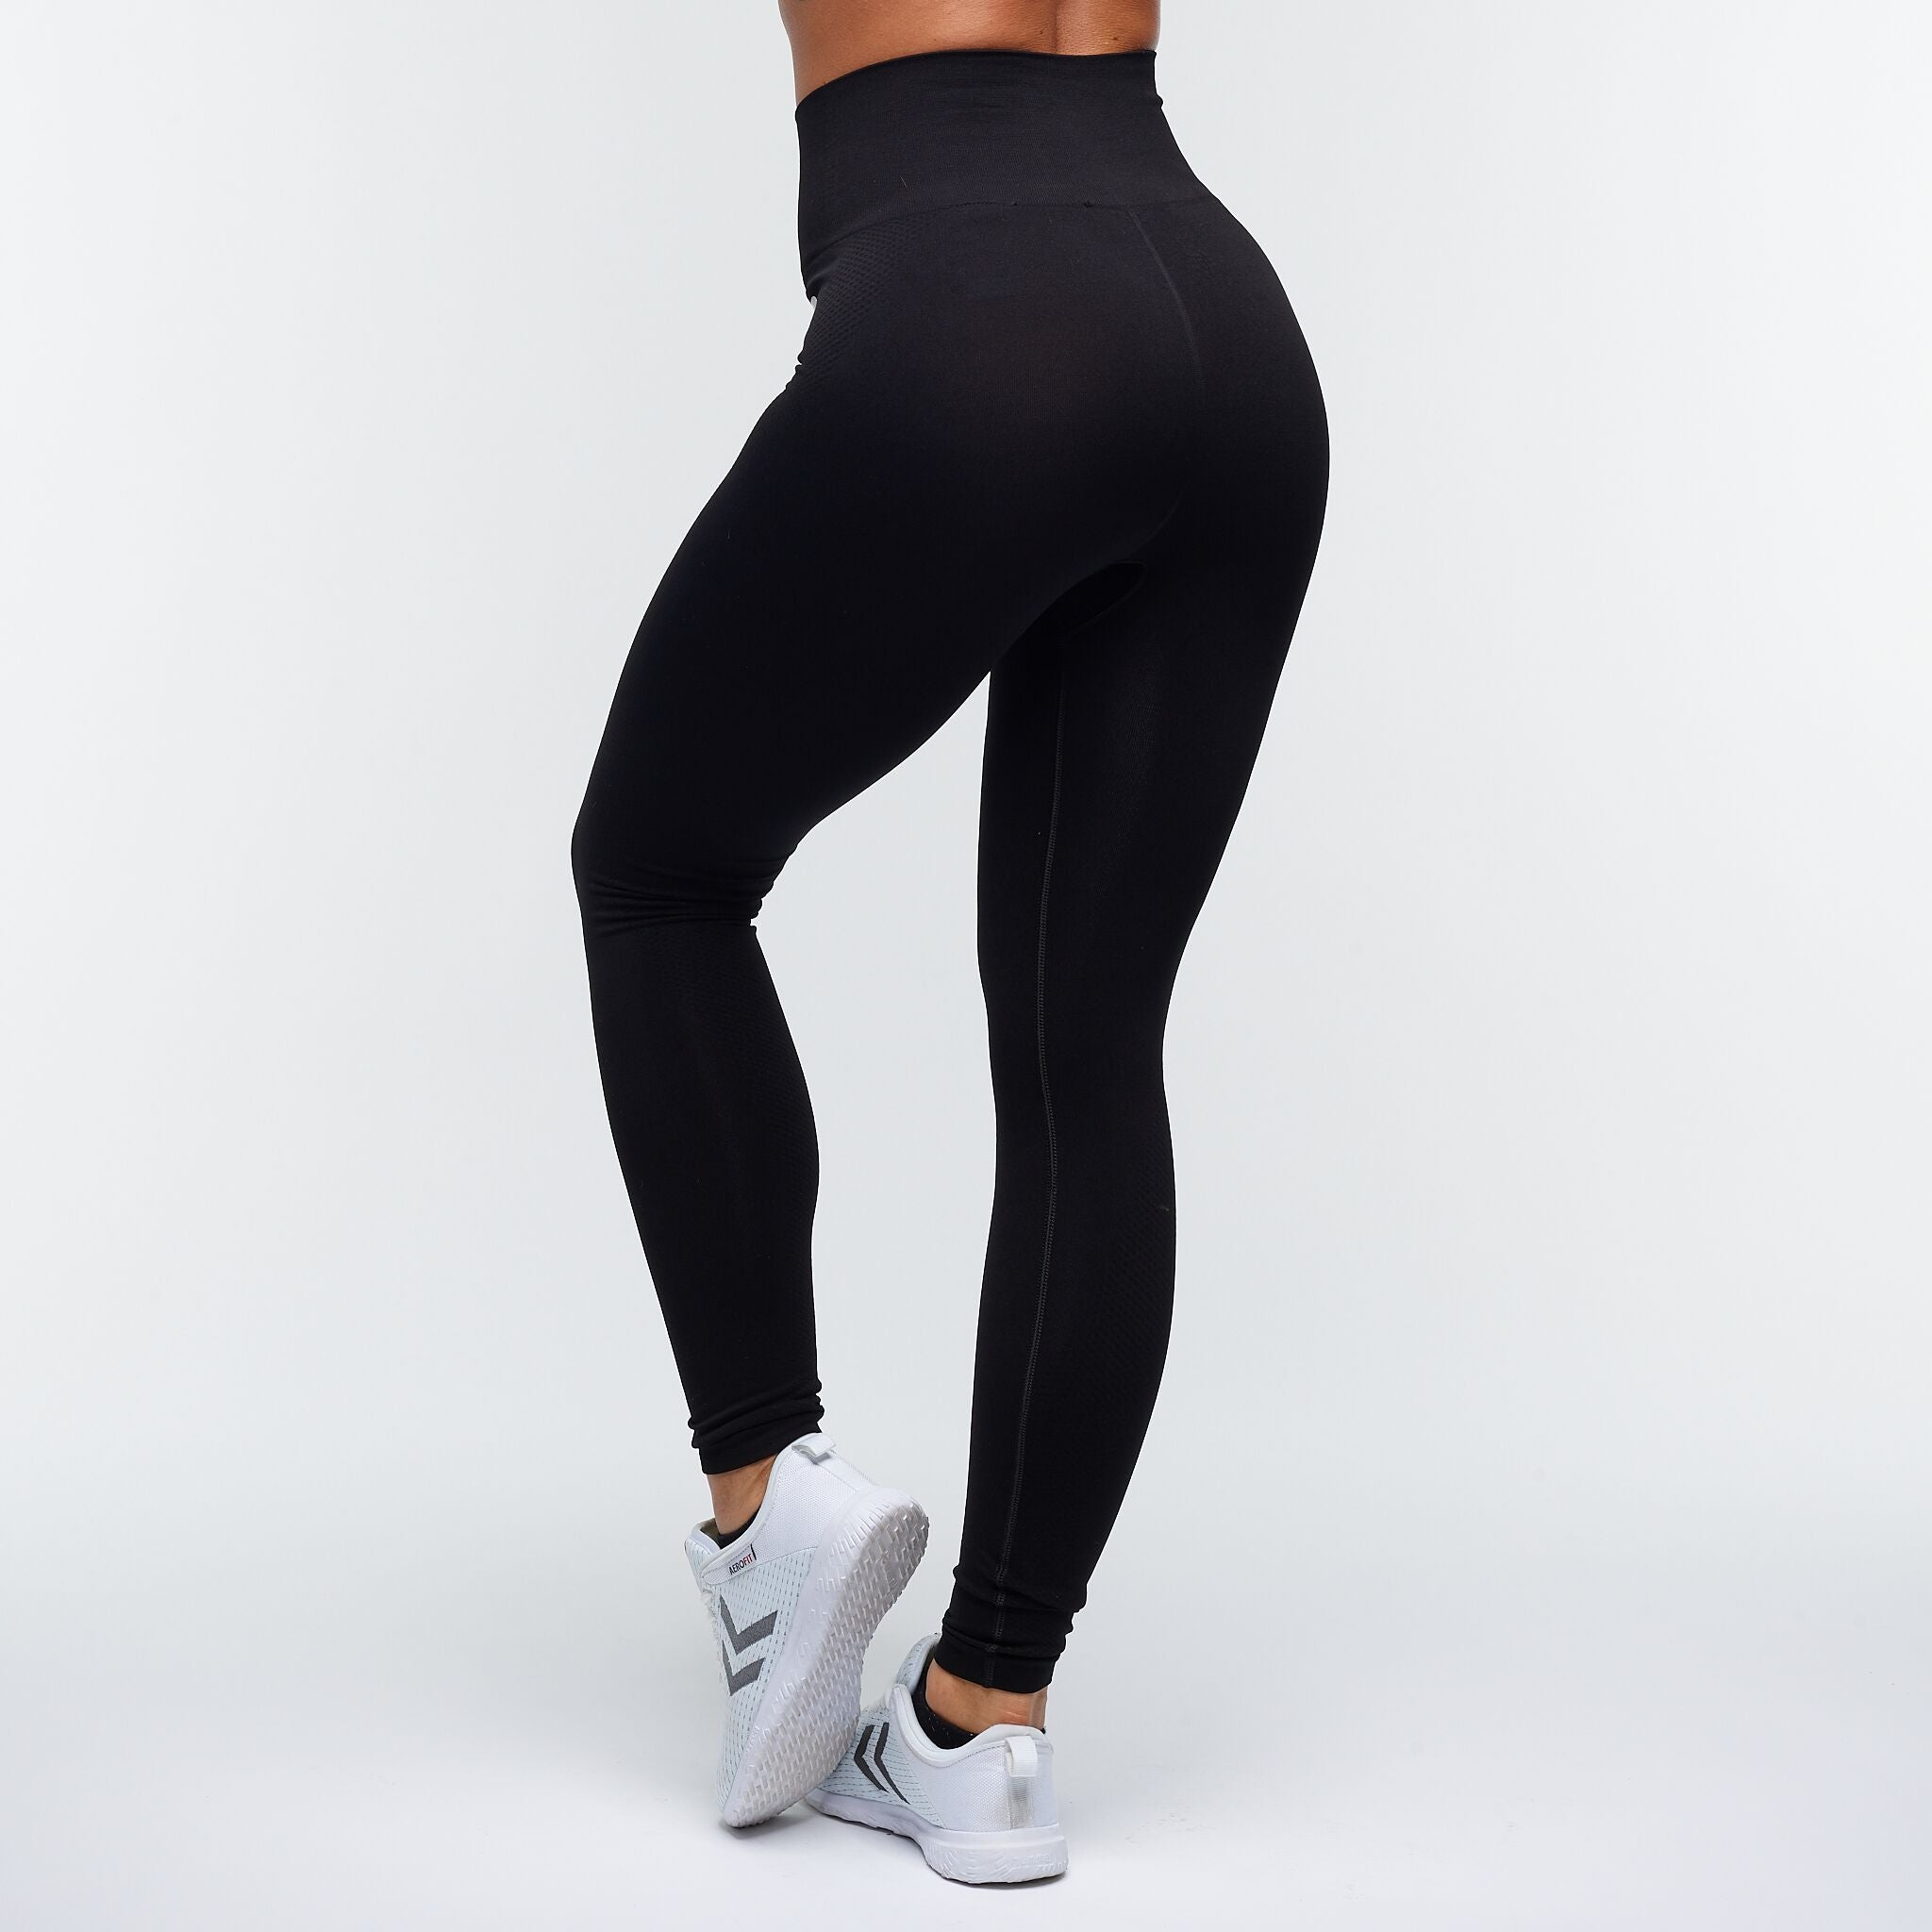 BETTER BODIES – ROCKAWAY TIGHTS SORT